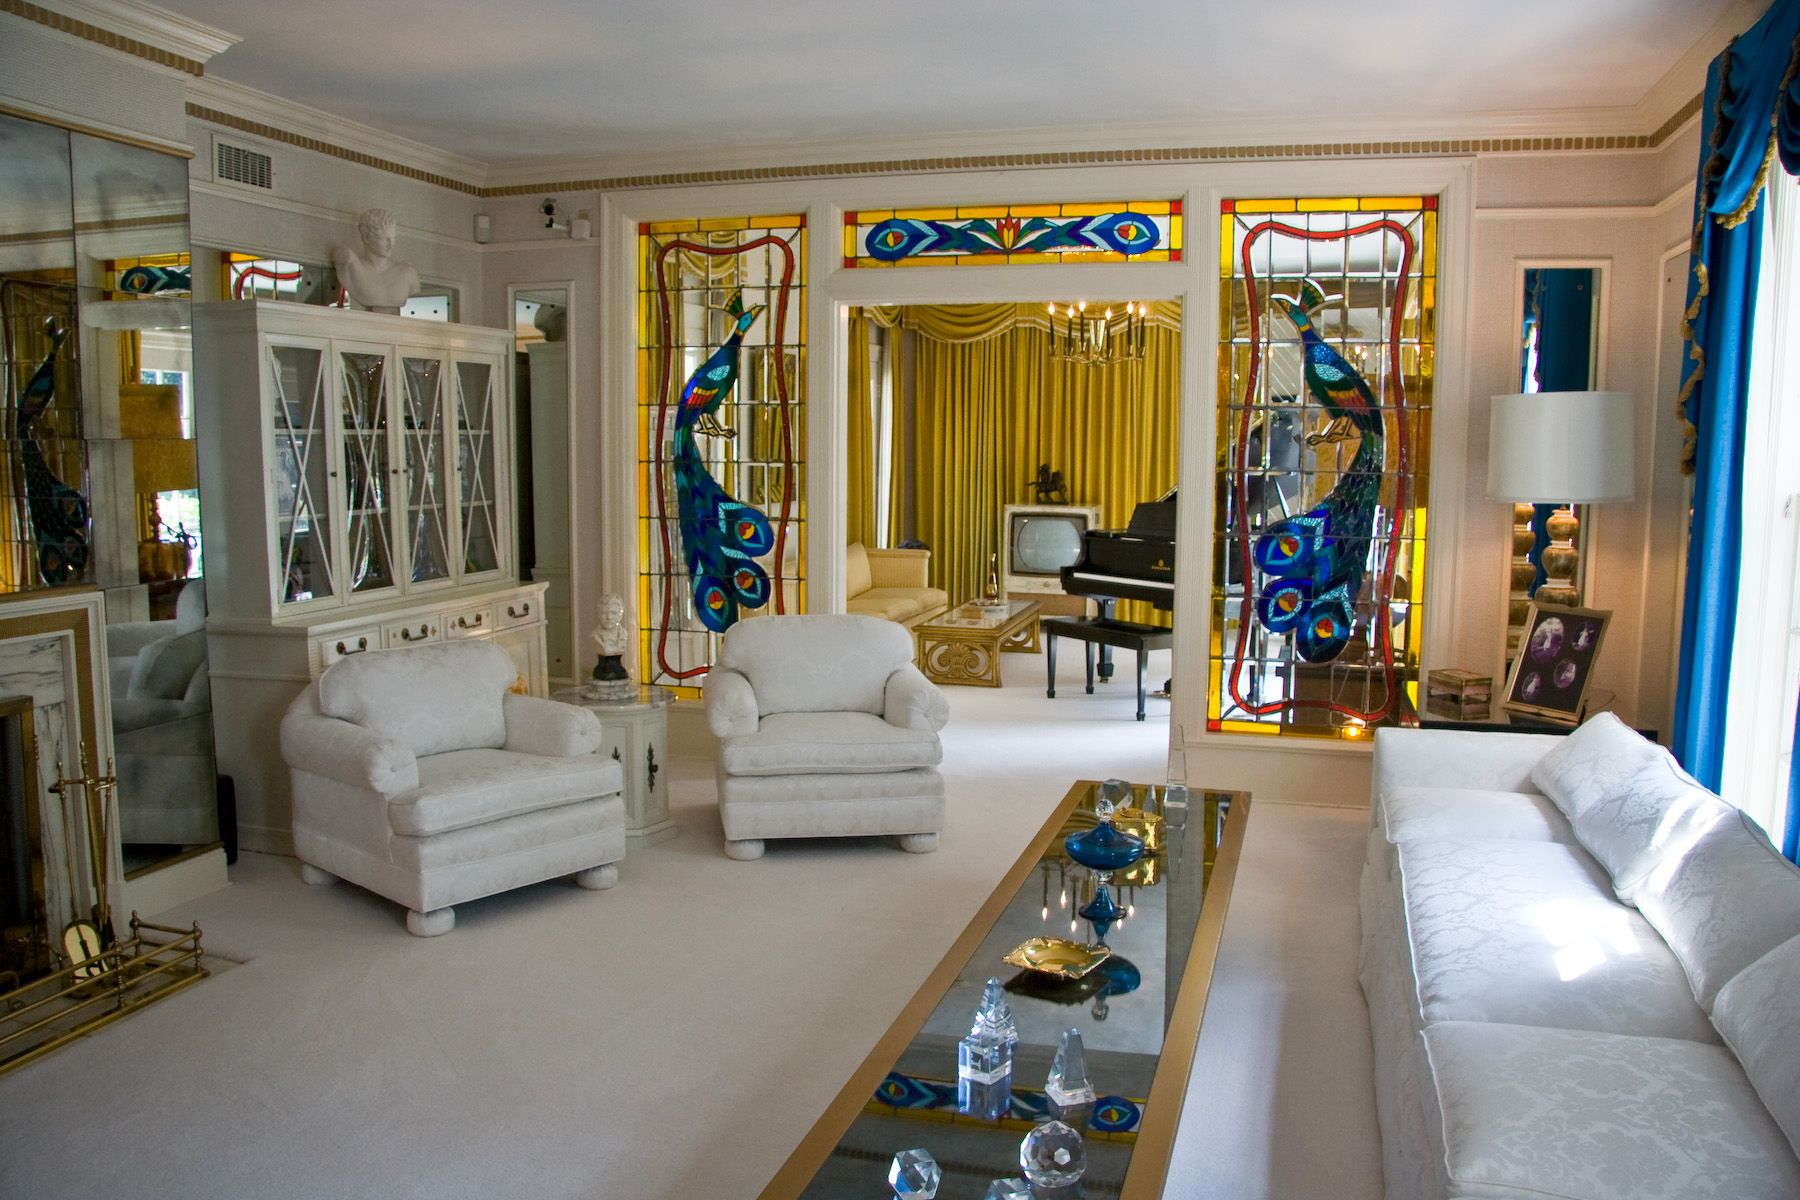 File:Graceland Living Room   Wikipedia, The Free Encyclopedia